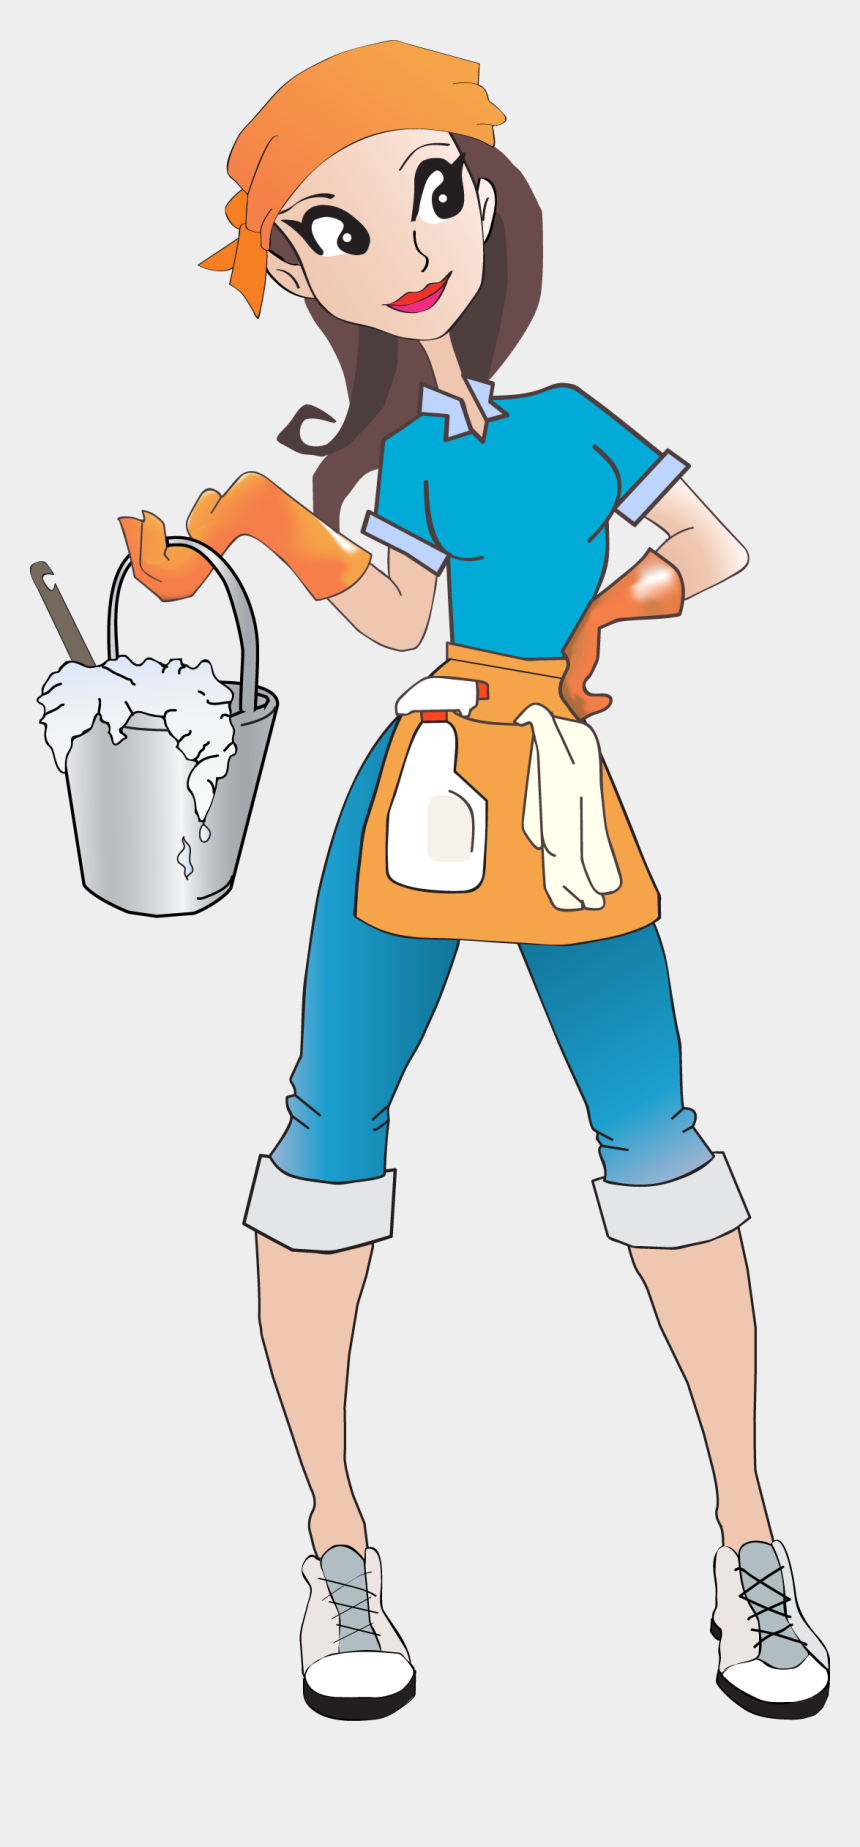 cleaning services clipart, Cartoons - Cleaning Services Images Free - House Cleaning